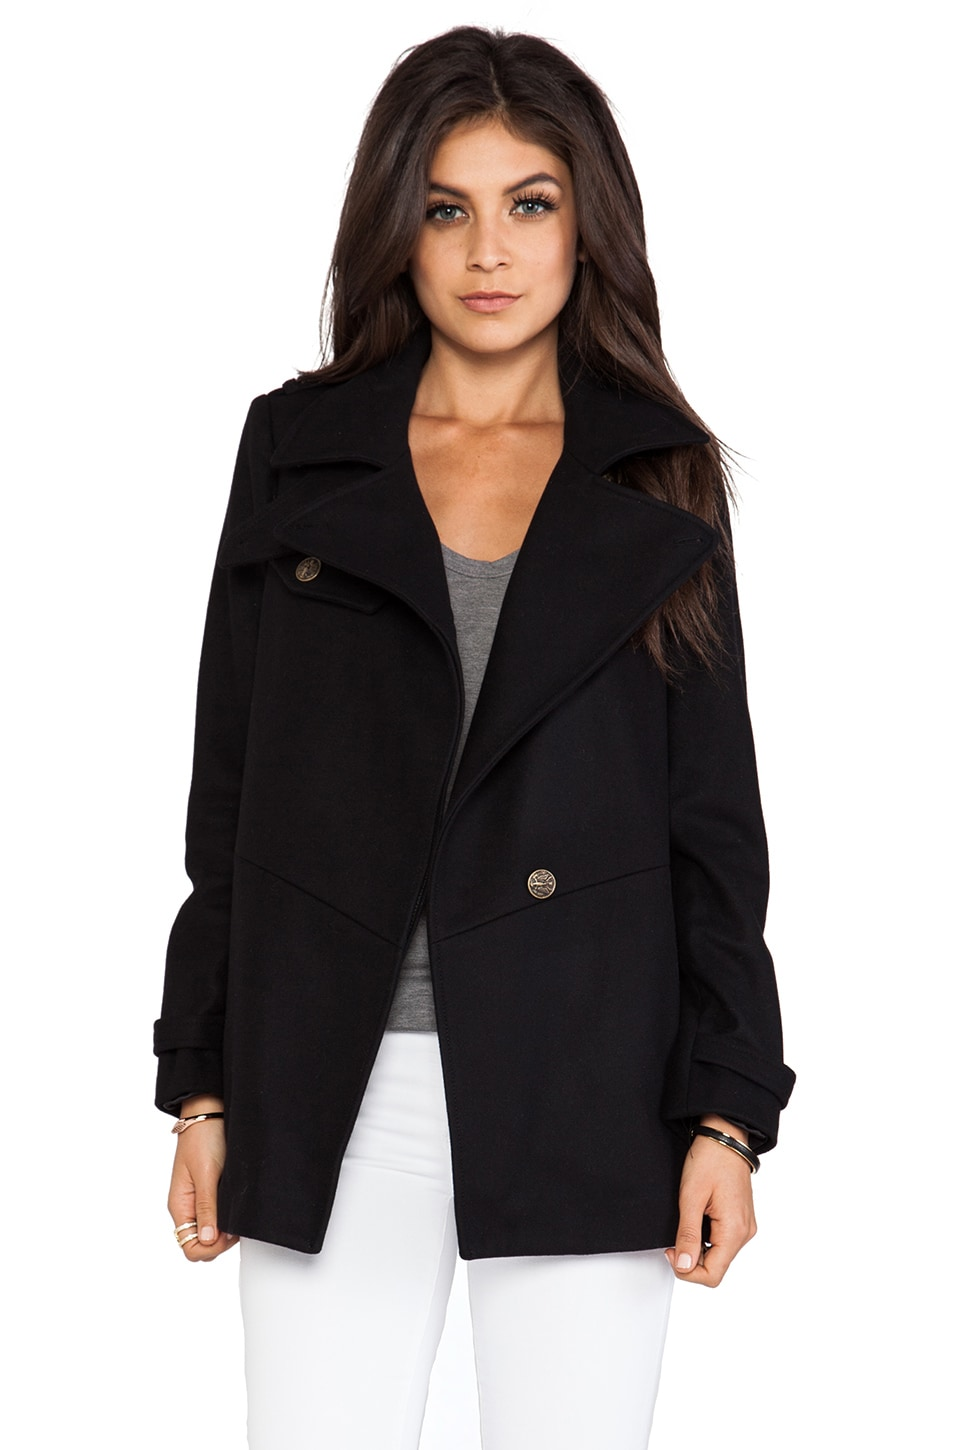 Gryphon Latch Coat in Black